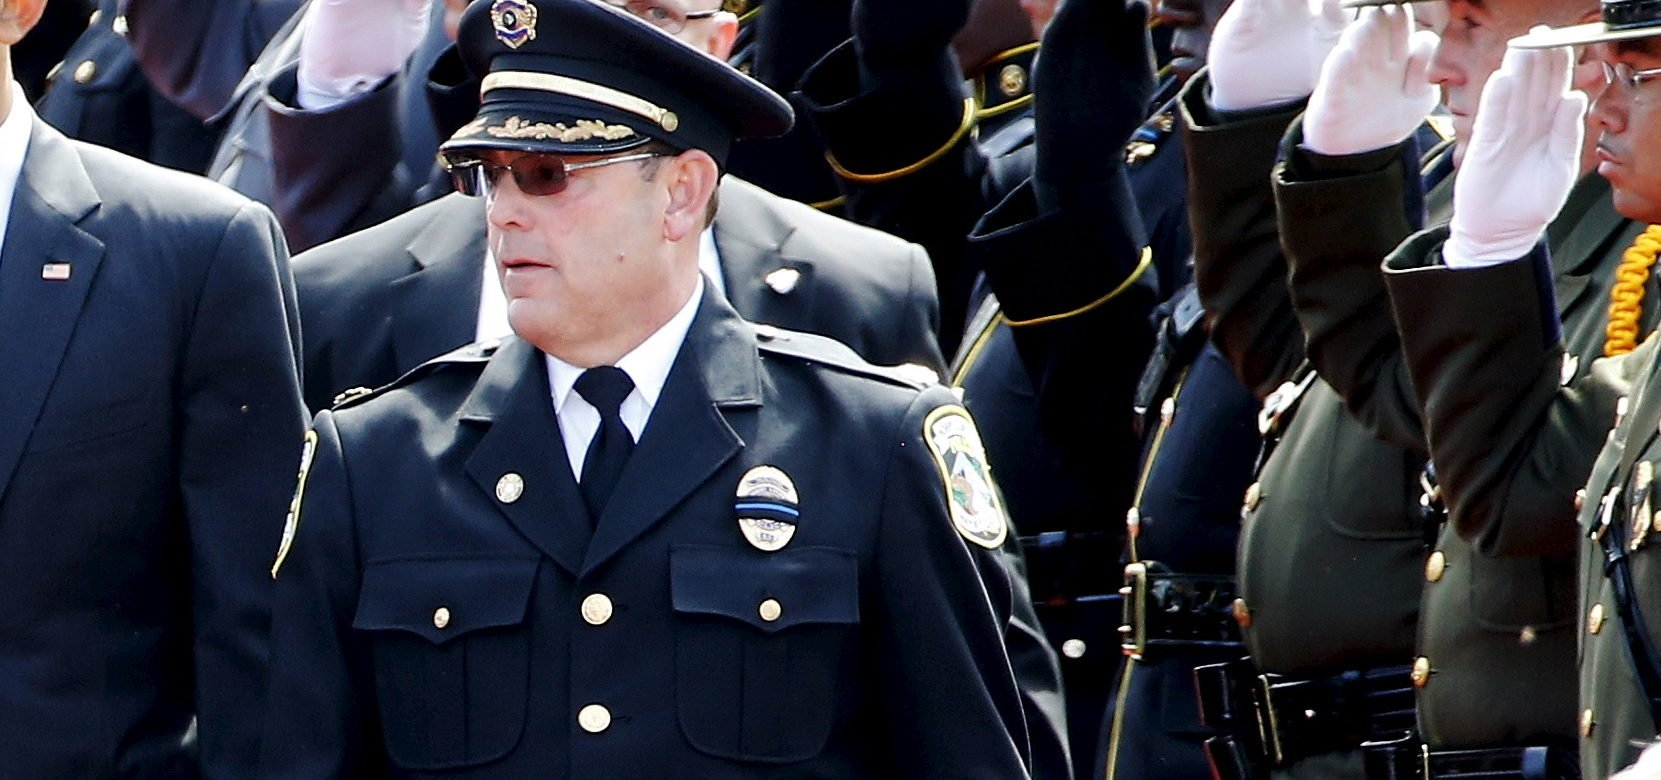 Fraternal Order of Police National President Chuck Canterbury (R) arrives at the National Peace Officers' Memorial Service at the U.S. Capitol in Washington May 15, 2015. REUTERS/Jonathan Ernst